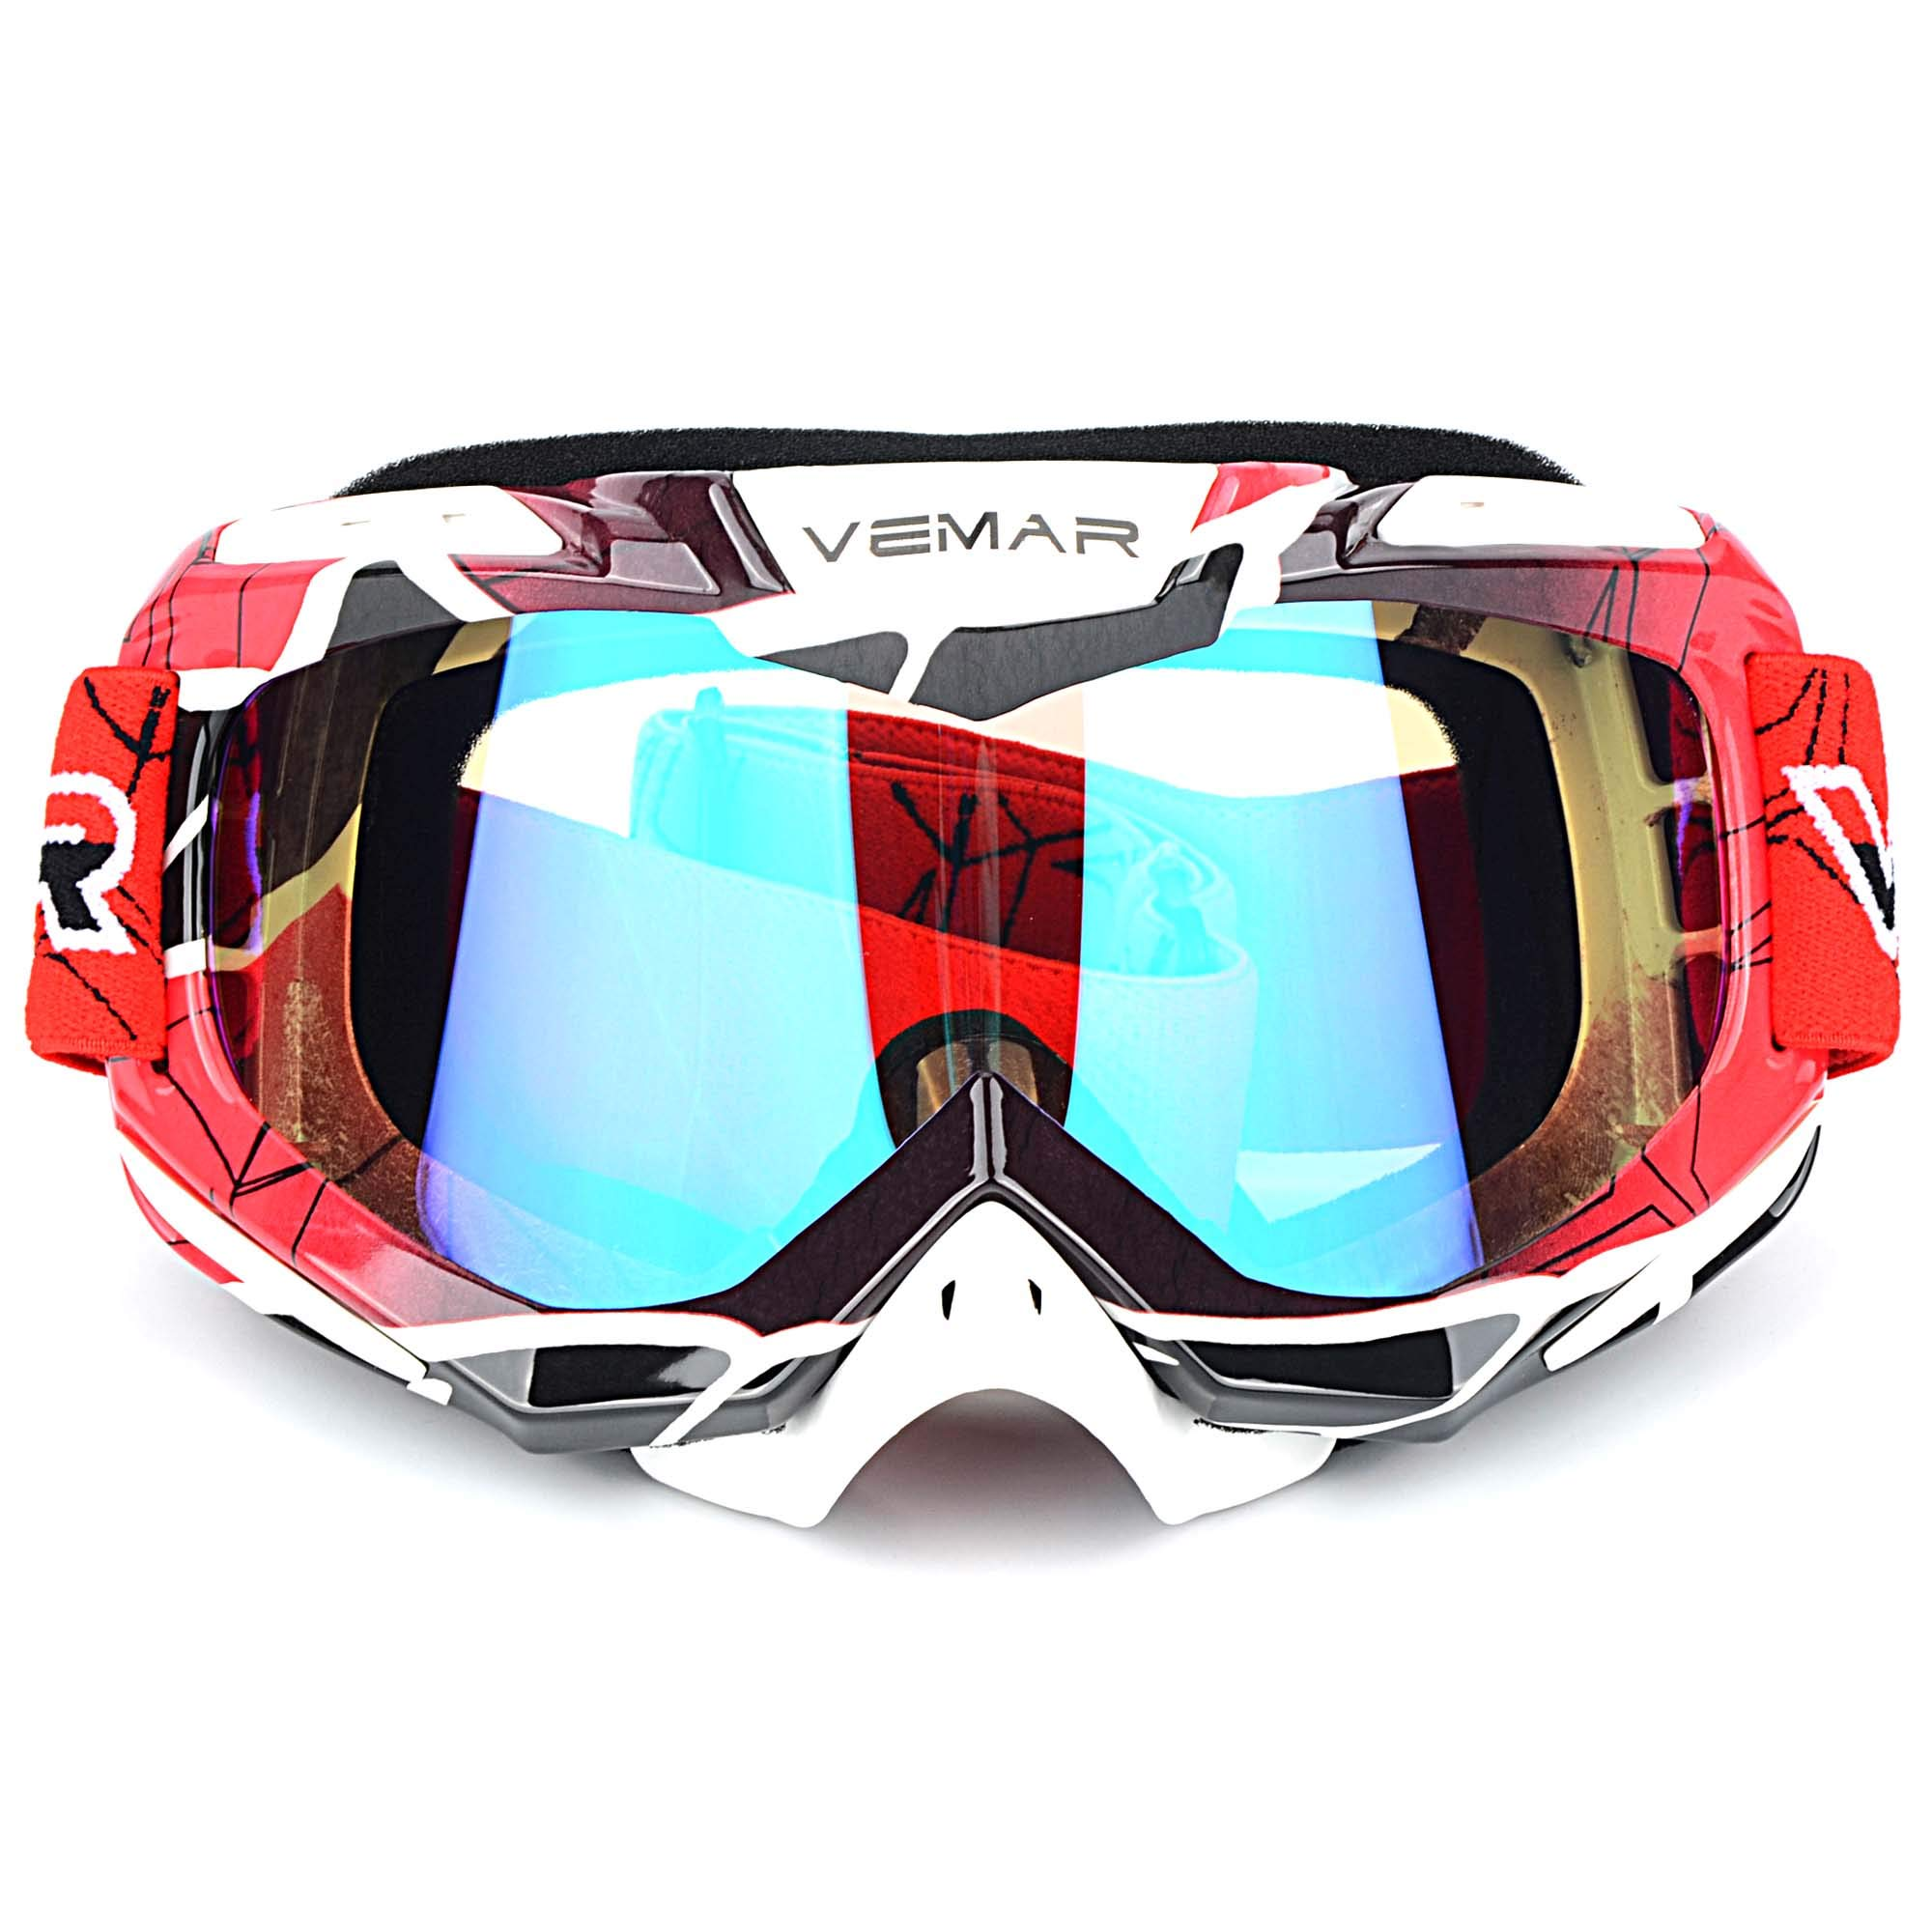 Polarized Sport Motorcycle Motocross Goggles ATV Racing Goggles Dirt Bike Tactical Riding Motorbike Goggle Glasses, Bendable Windproof Dustproof Scratch Resistant Protective Safety Glasses (Red) by Ubelly